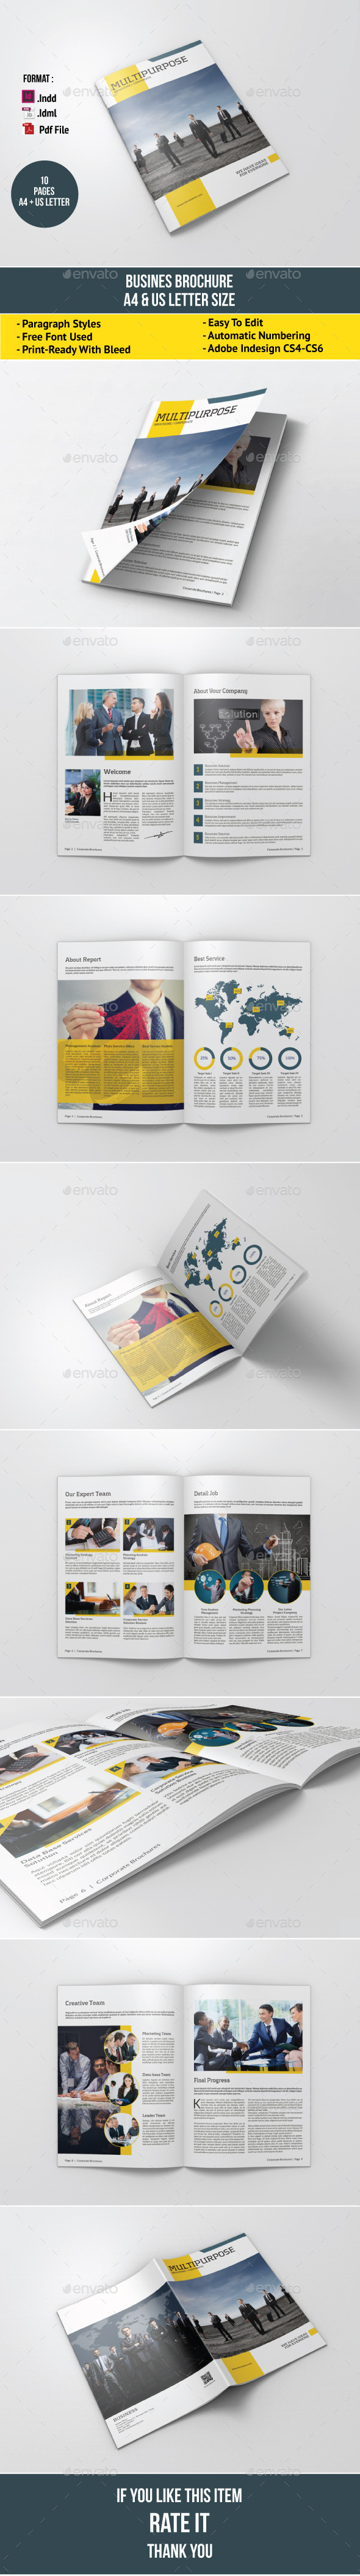 GraphicRiver Business Brochure Template 10713369